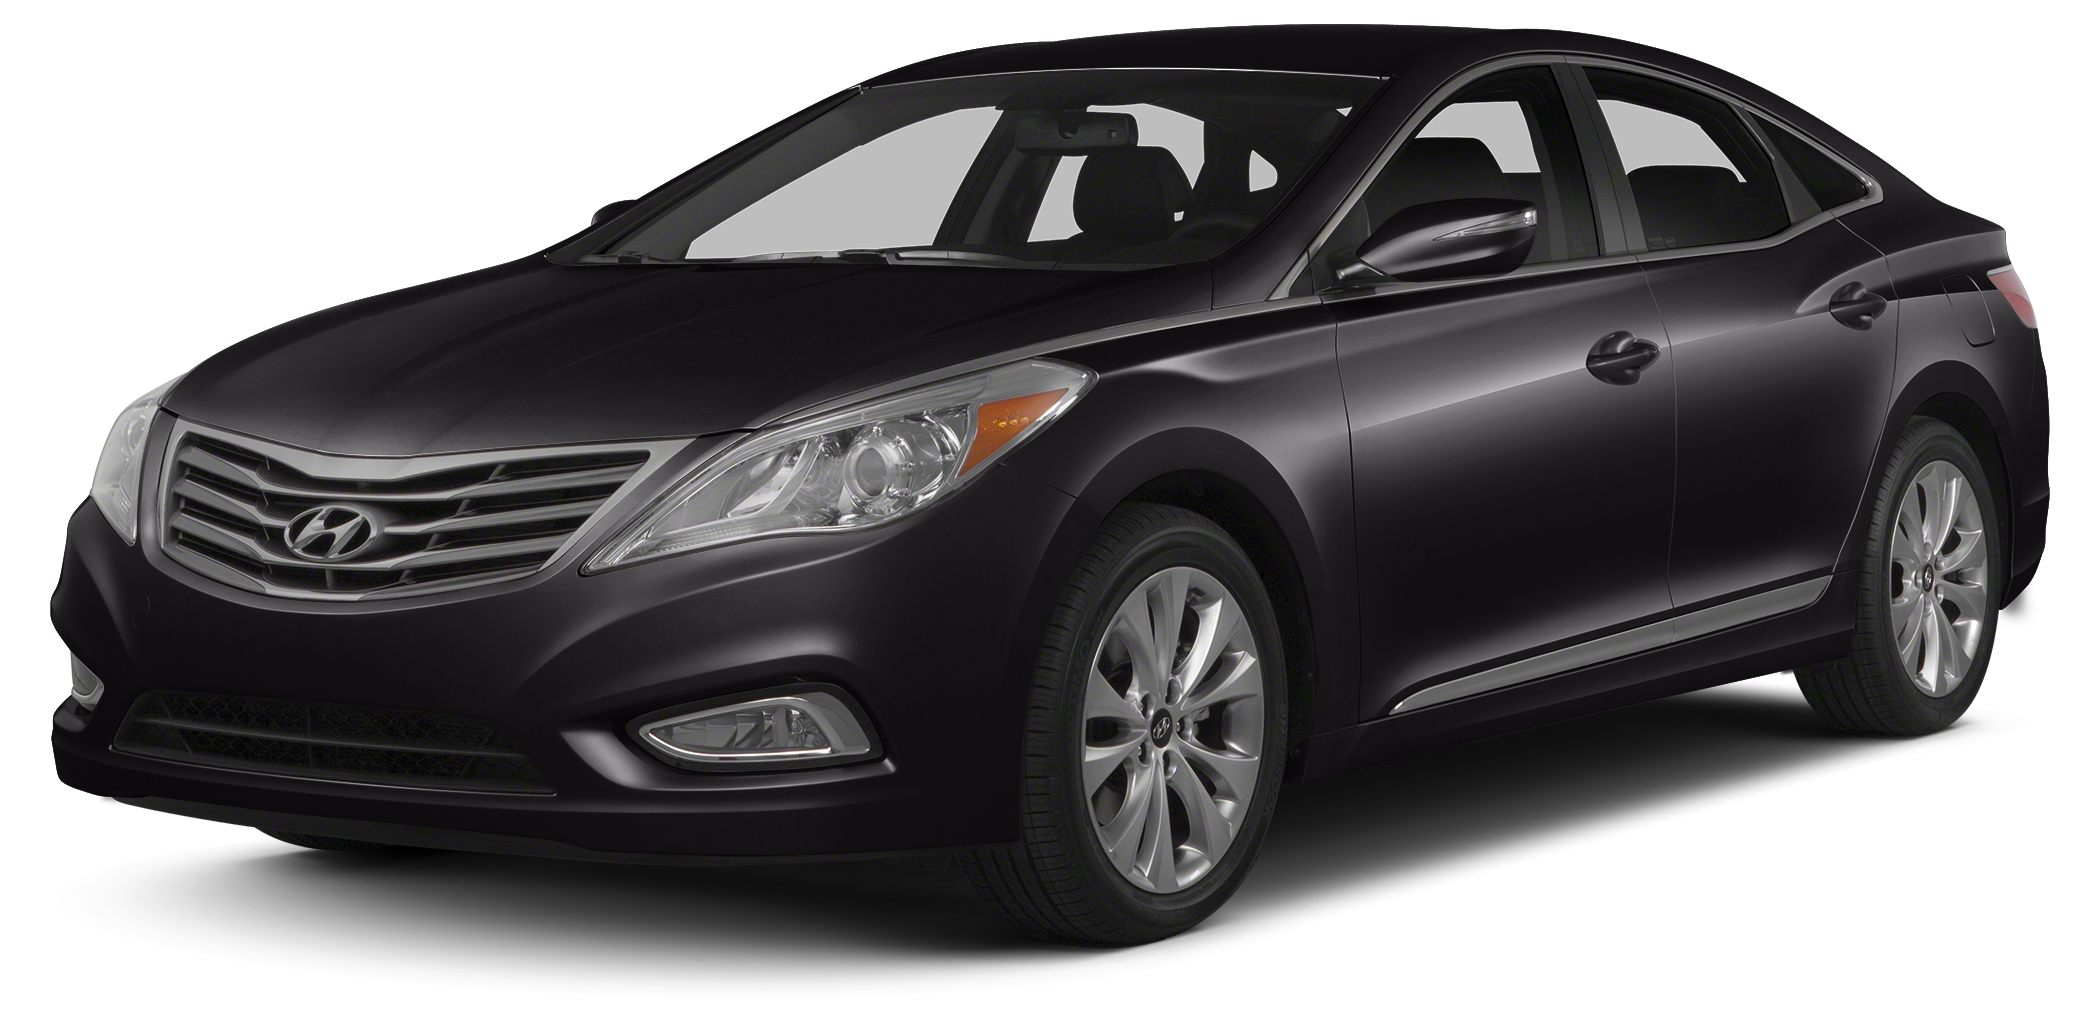 2012 Hyundai Azera Base Miles 24990Color Black Onyx Pearl Stock HP2547 VIN KMHFG4JG5CA134084